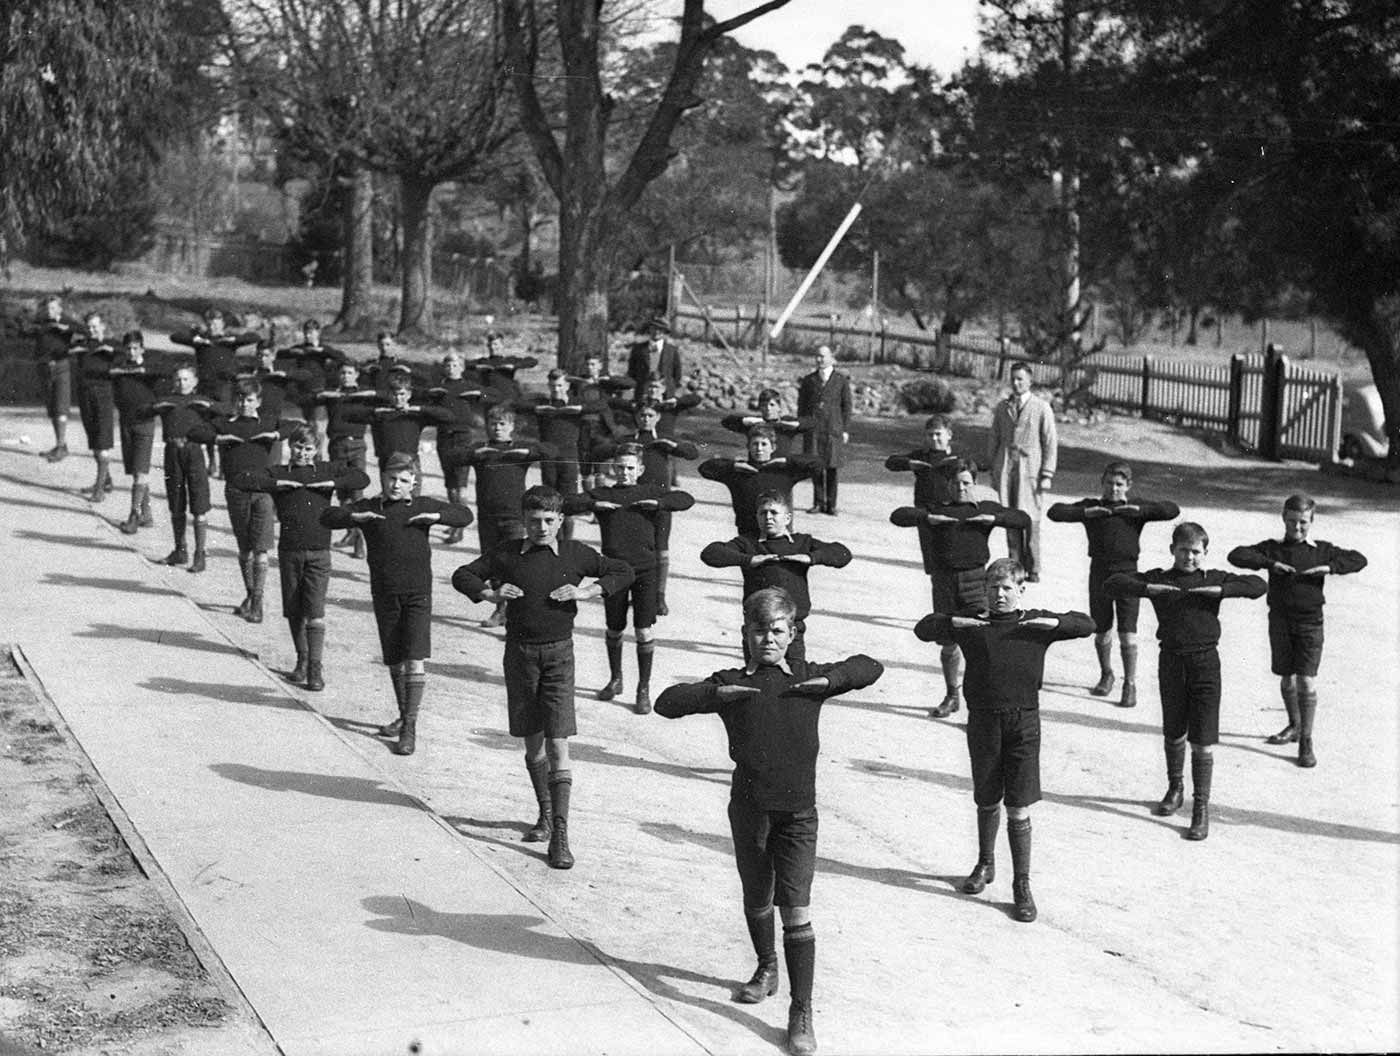 Black and white photograph showing nine rows of four boys standing outside with right leg extended forward and arms raised to chest height, with hands pointing down. The boys wear matching dark shorts, jumpers, long socks and boots. Three men stand behind them towards the back of the photo. - click to view larger image